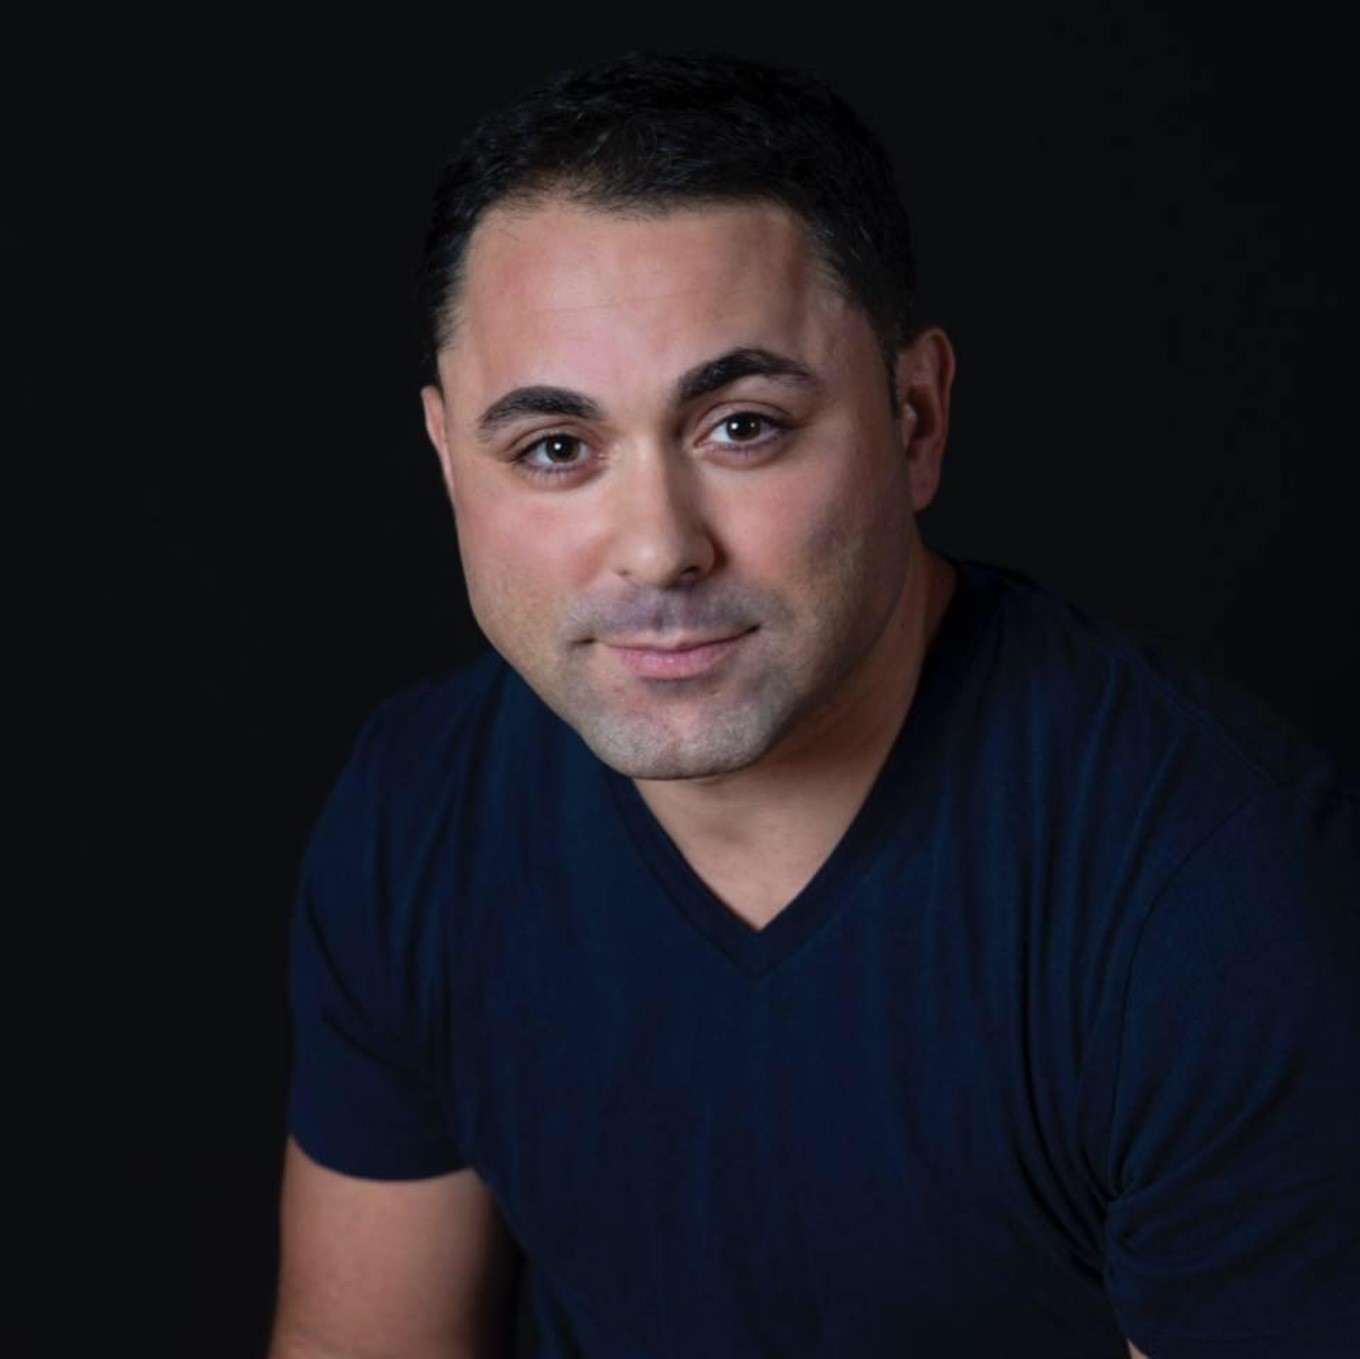 Anthony Rodia 8 Pm Show Funny Stop Comedy Club on jun. 03, 20:00@Funny Stop Comedy Club - Buy tickets and Get information on Funny Stop funnystop.online